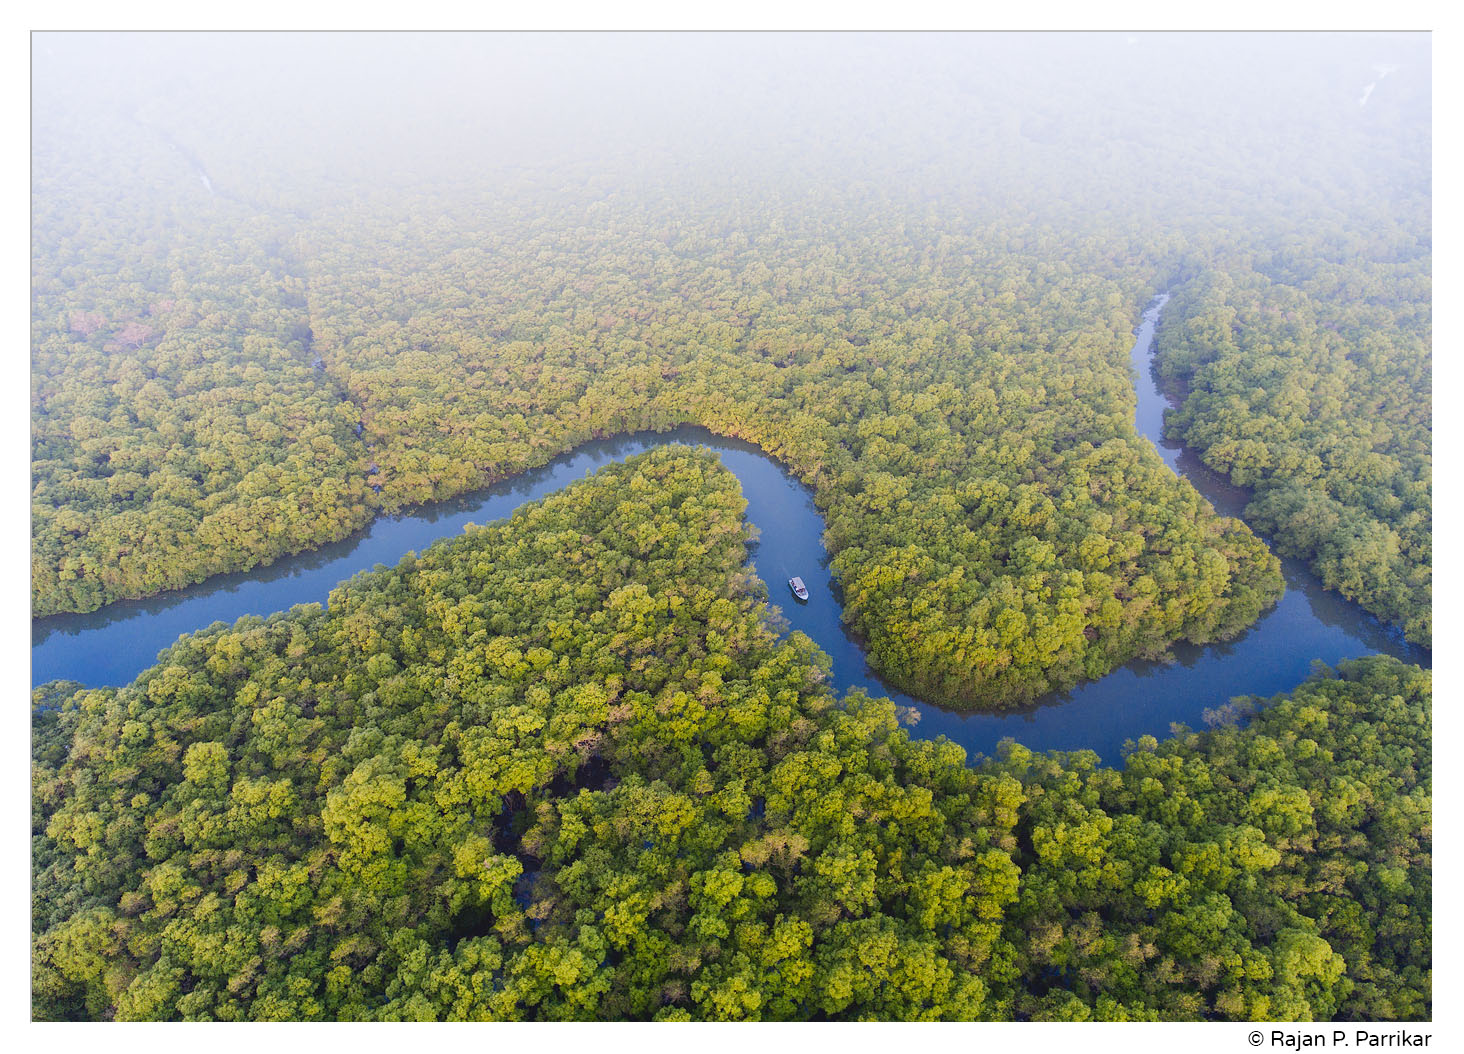 Mangroves of Chorão, Goa